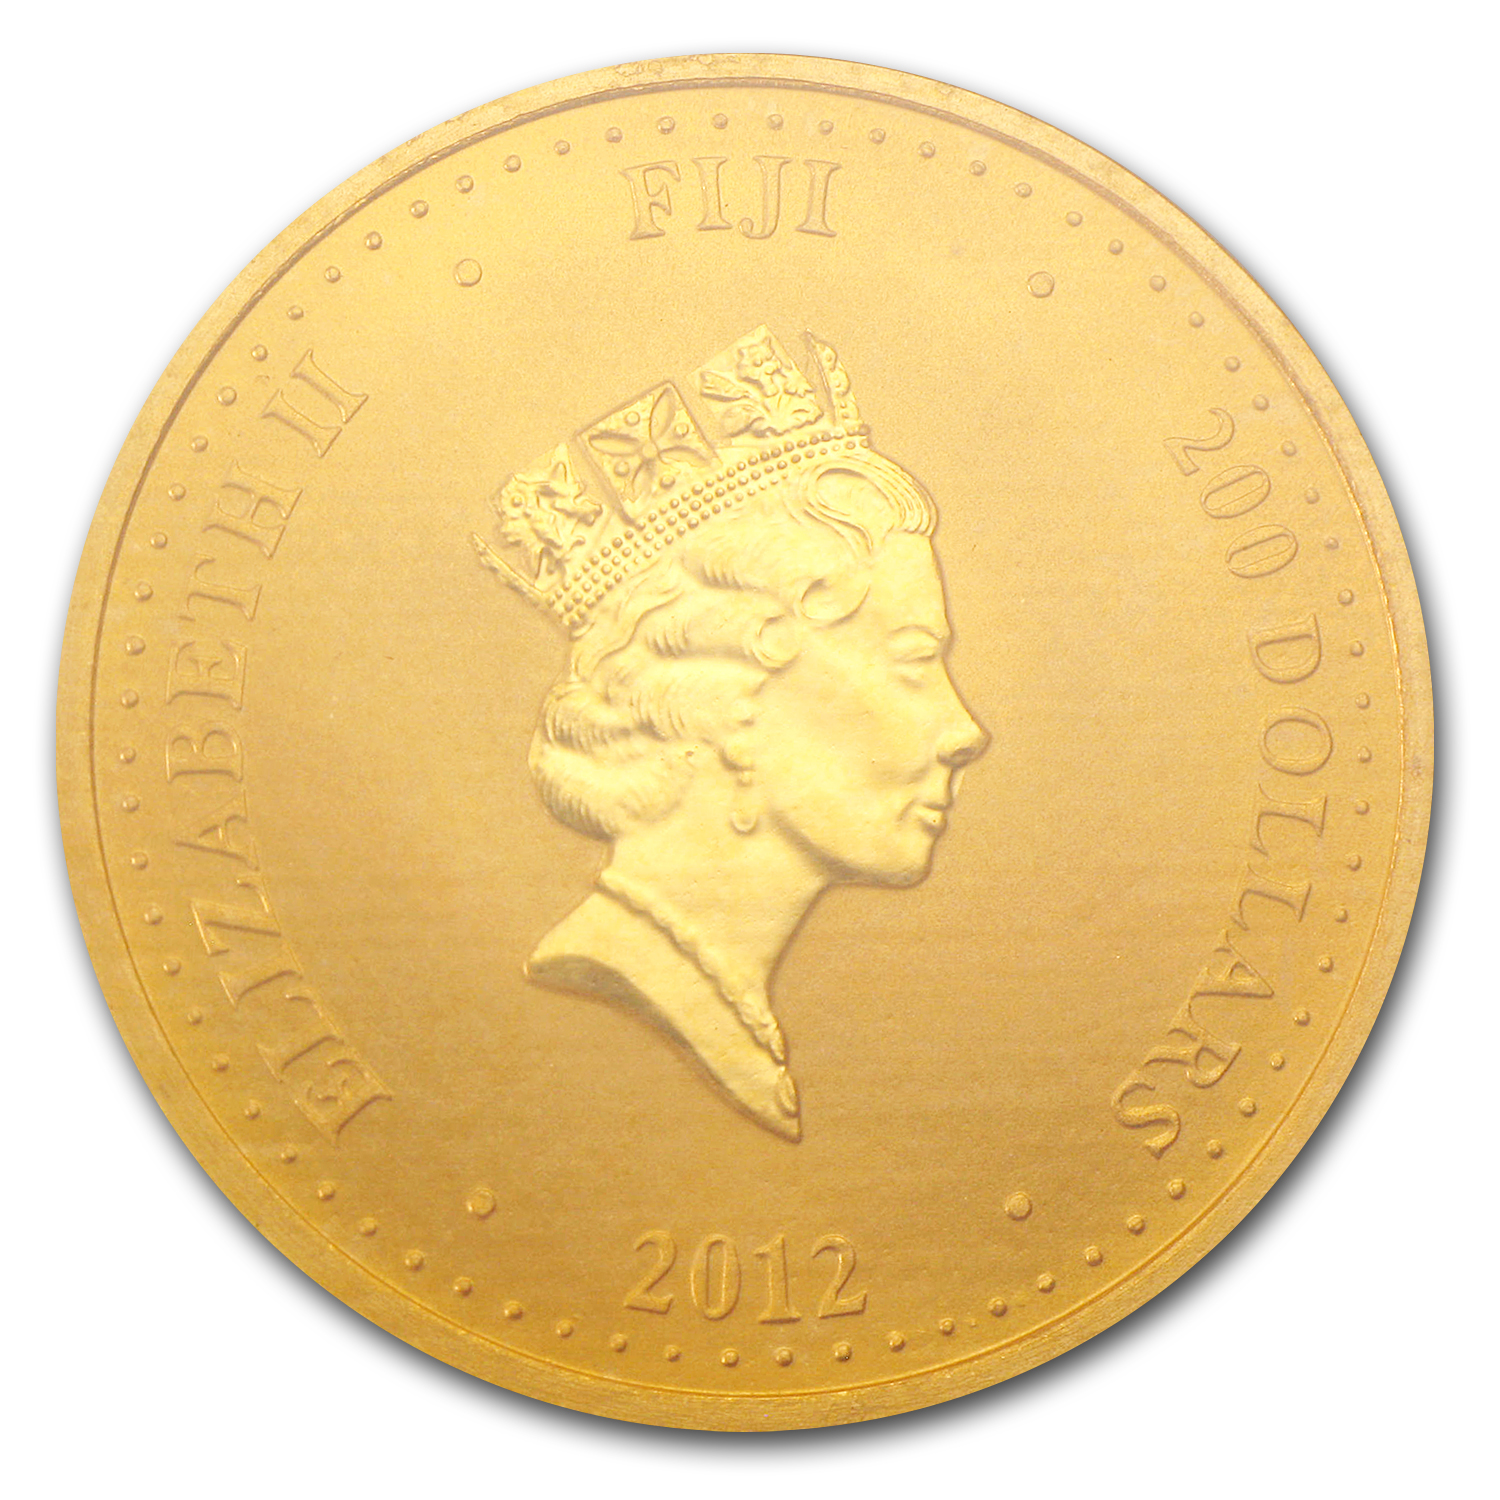 2012 Fiji 1 oz Gold $200 Taku BU (In Assay)